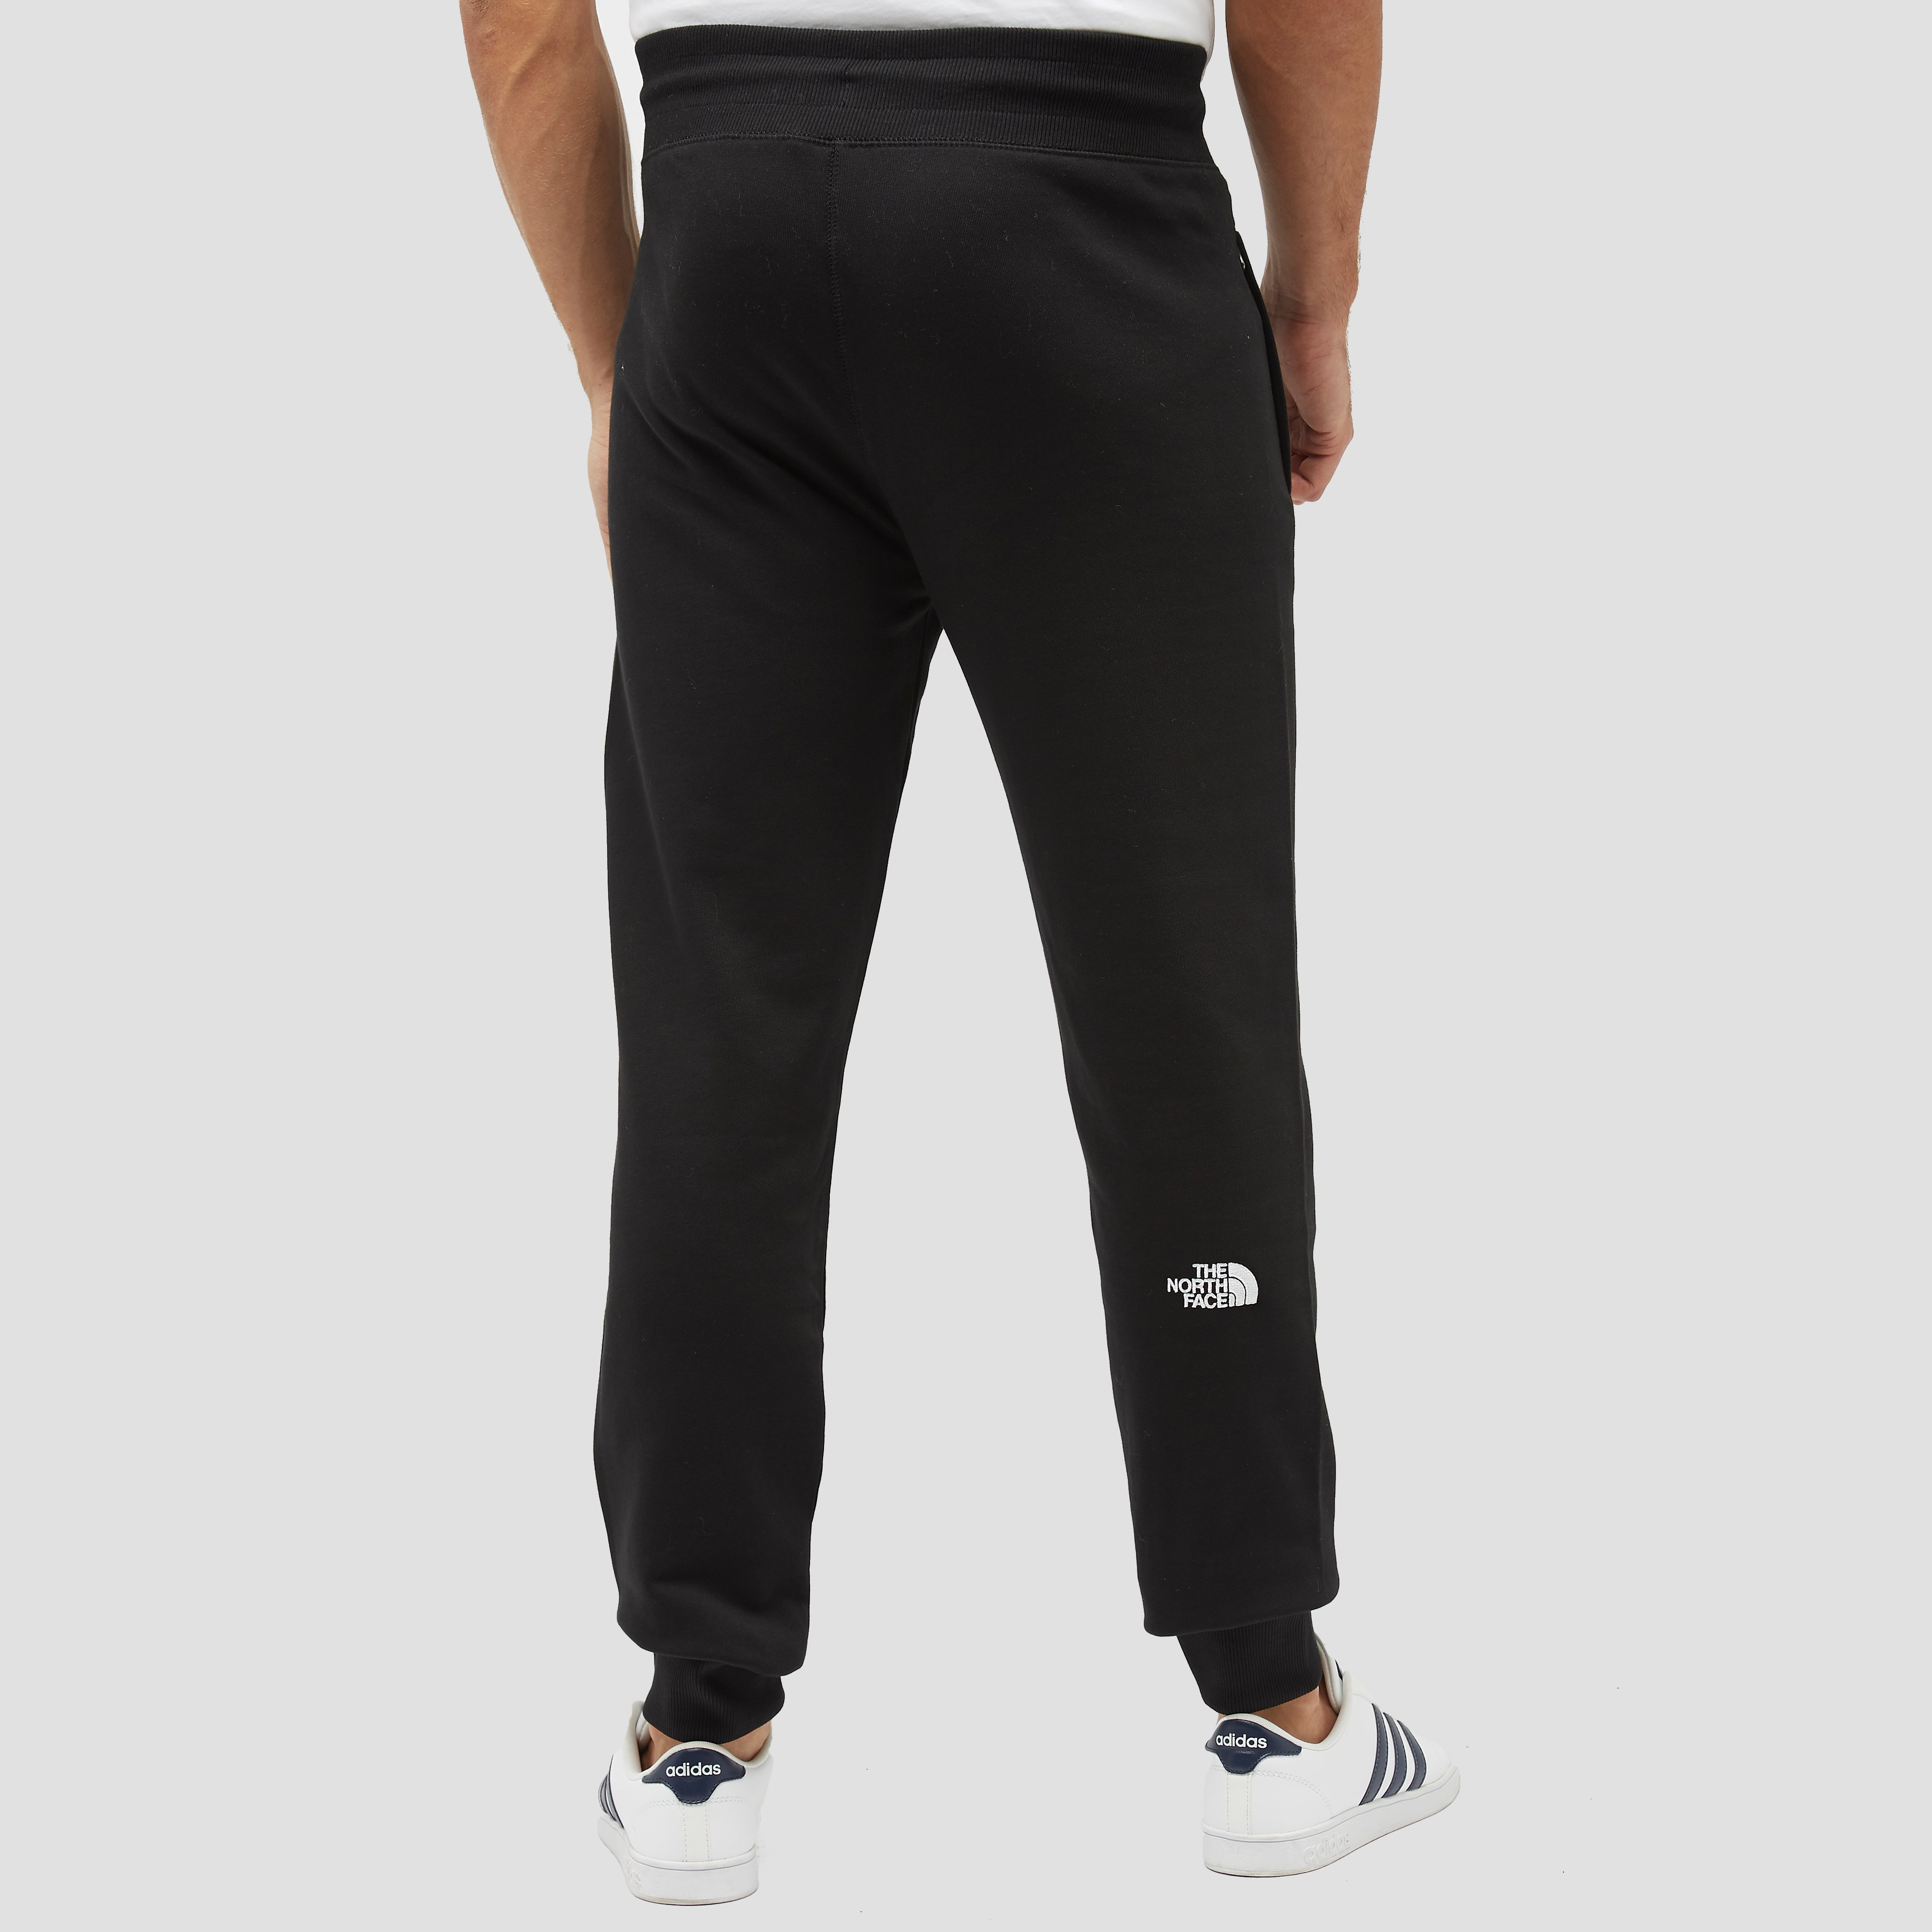 THE NORTH FACE NSE OUTDOOR BROEK ZWART HEREN